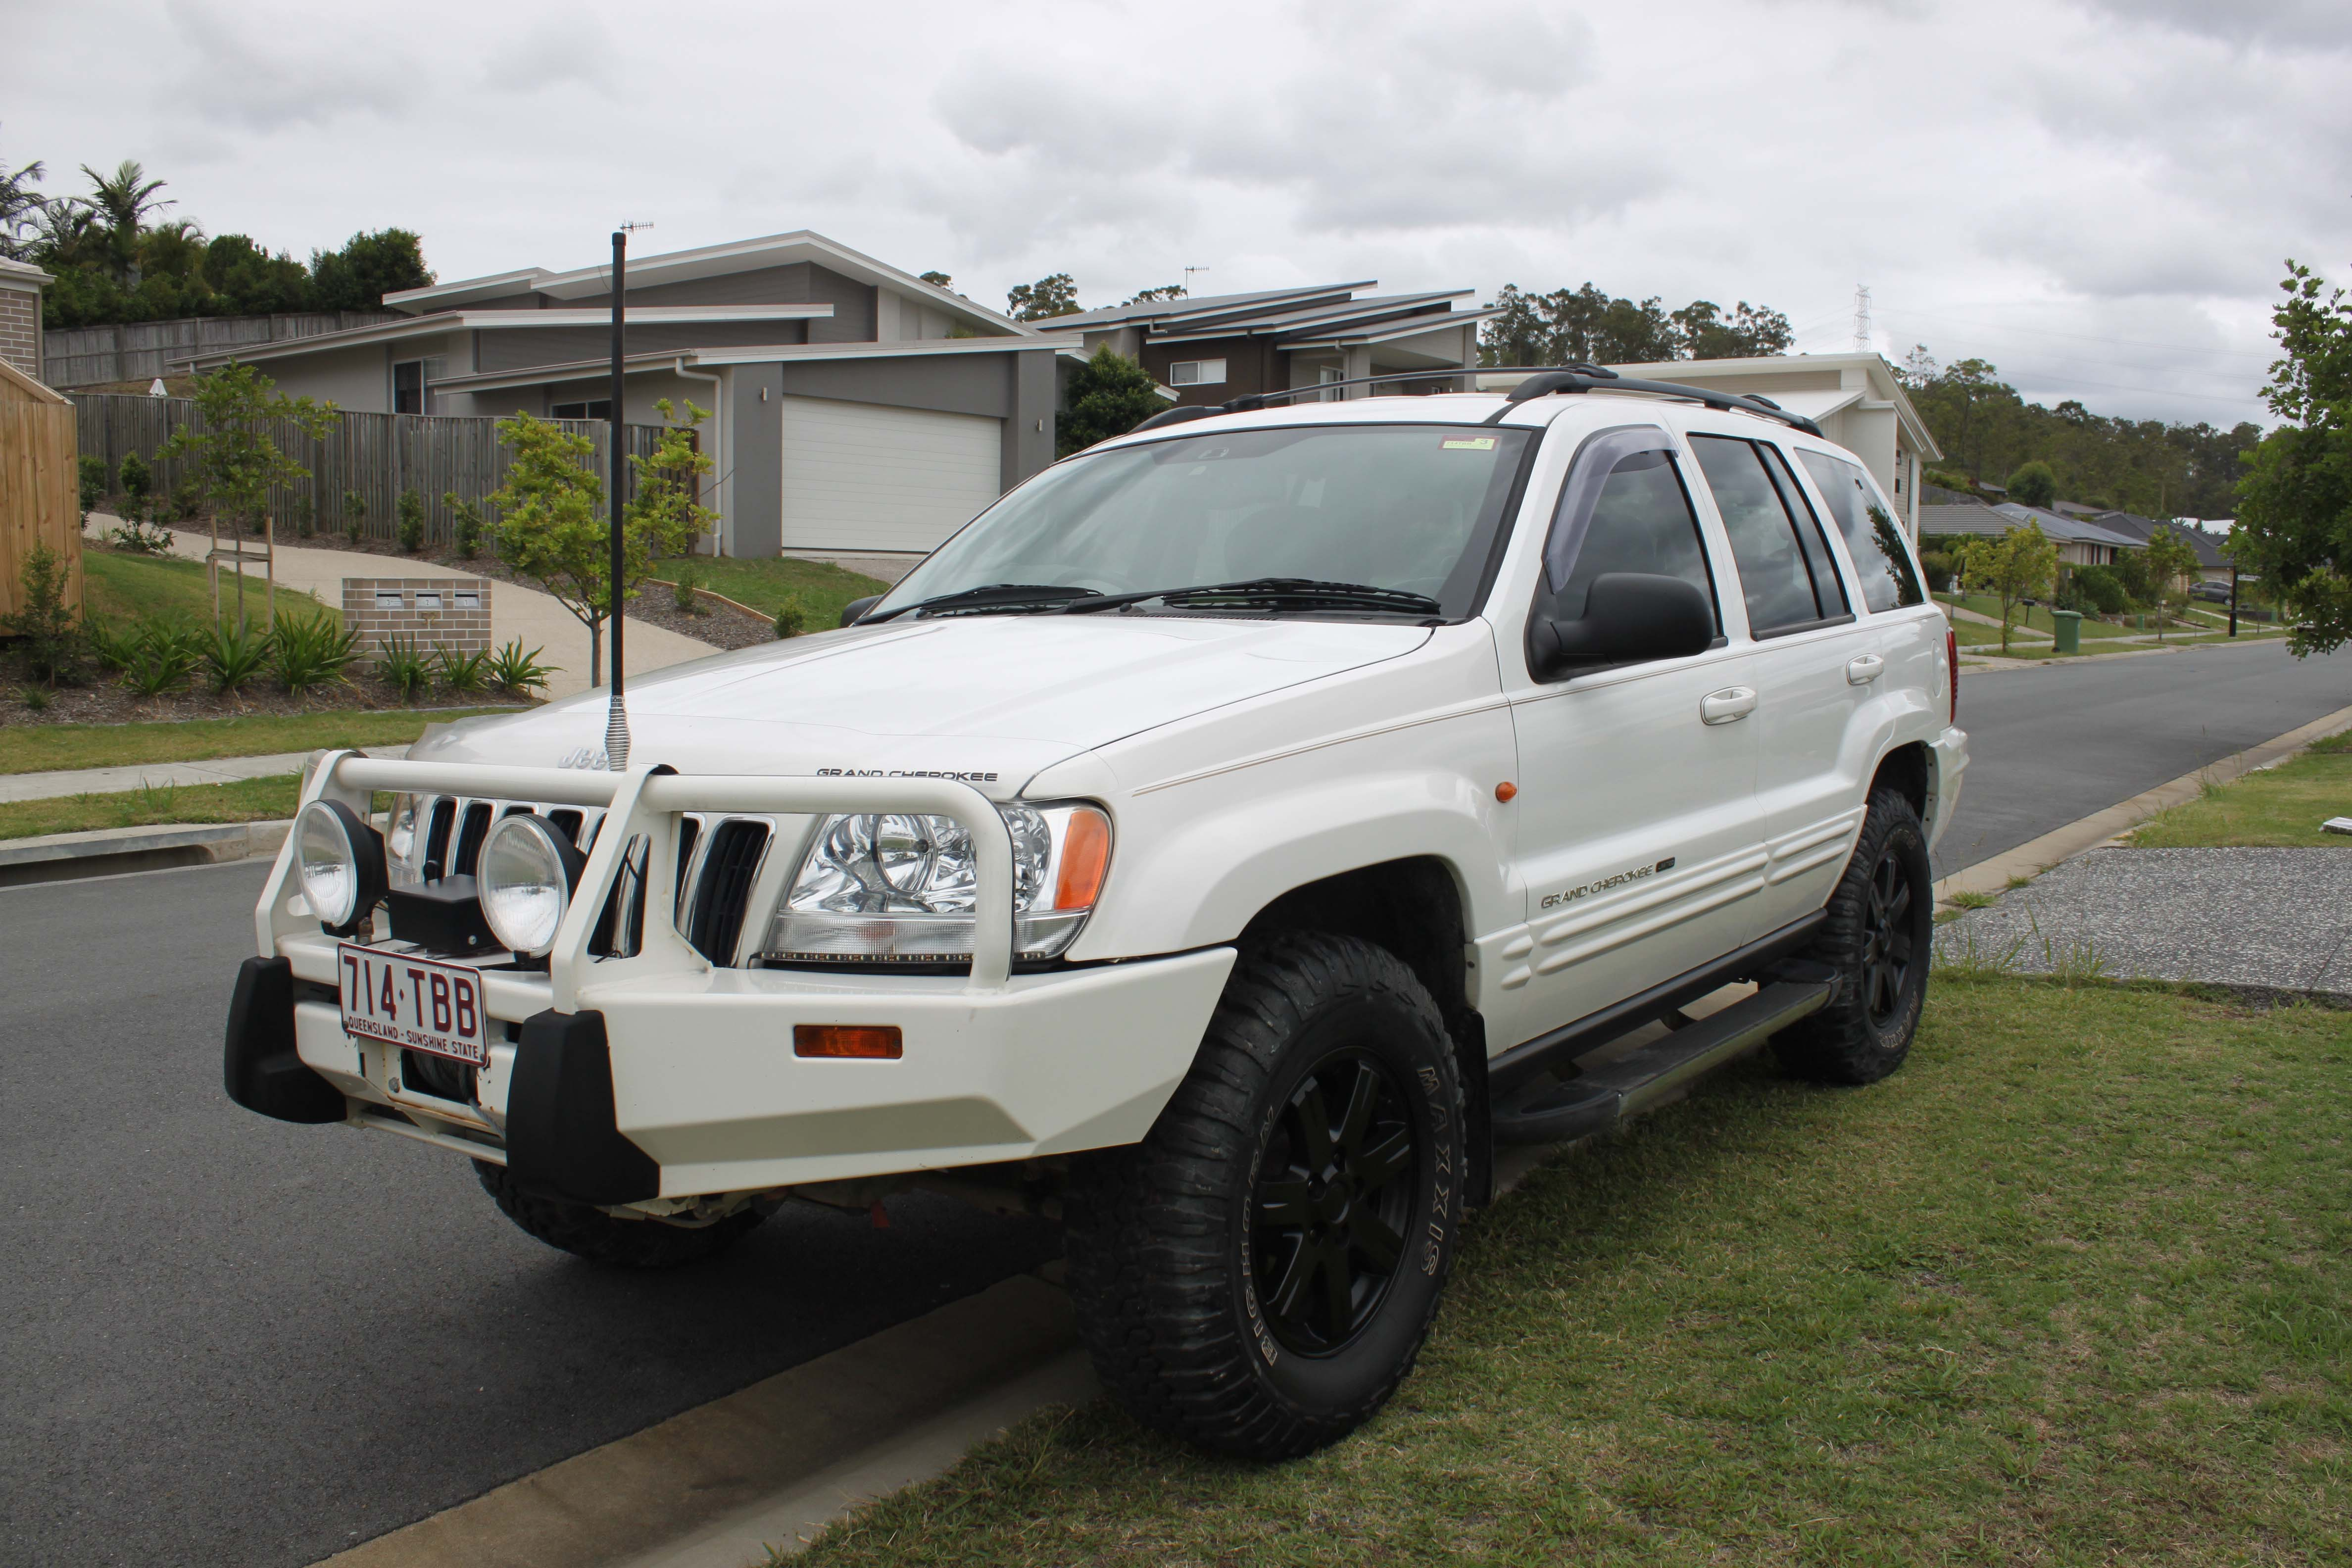 2003 jeep grand cherokee limited 4x4 wg for sale qld gold coast. Black Bedroom Furniture Sets. Home Design Ideas